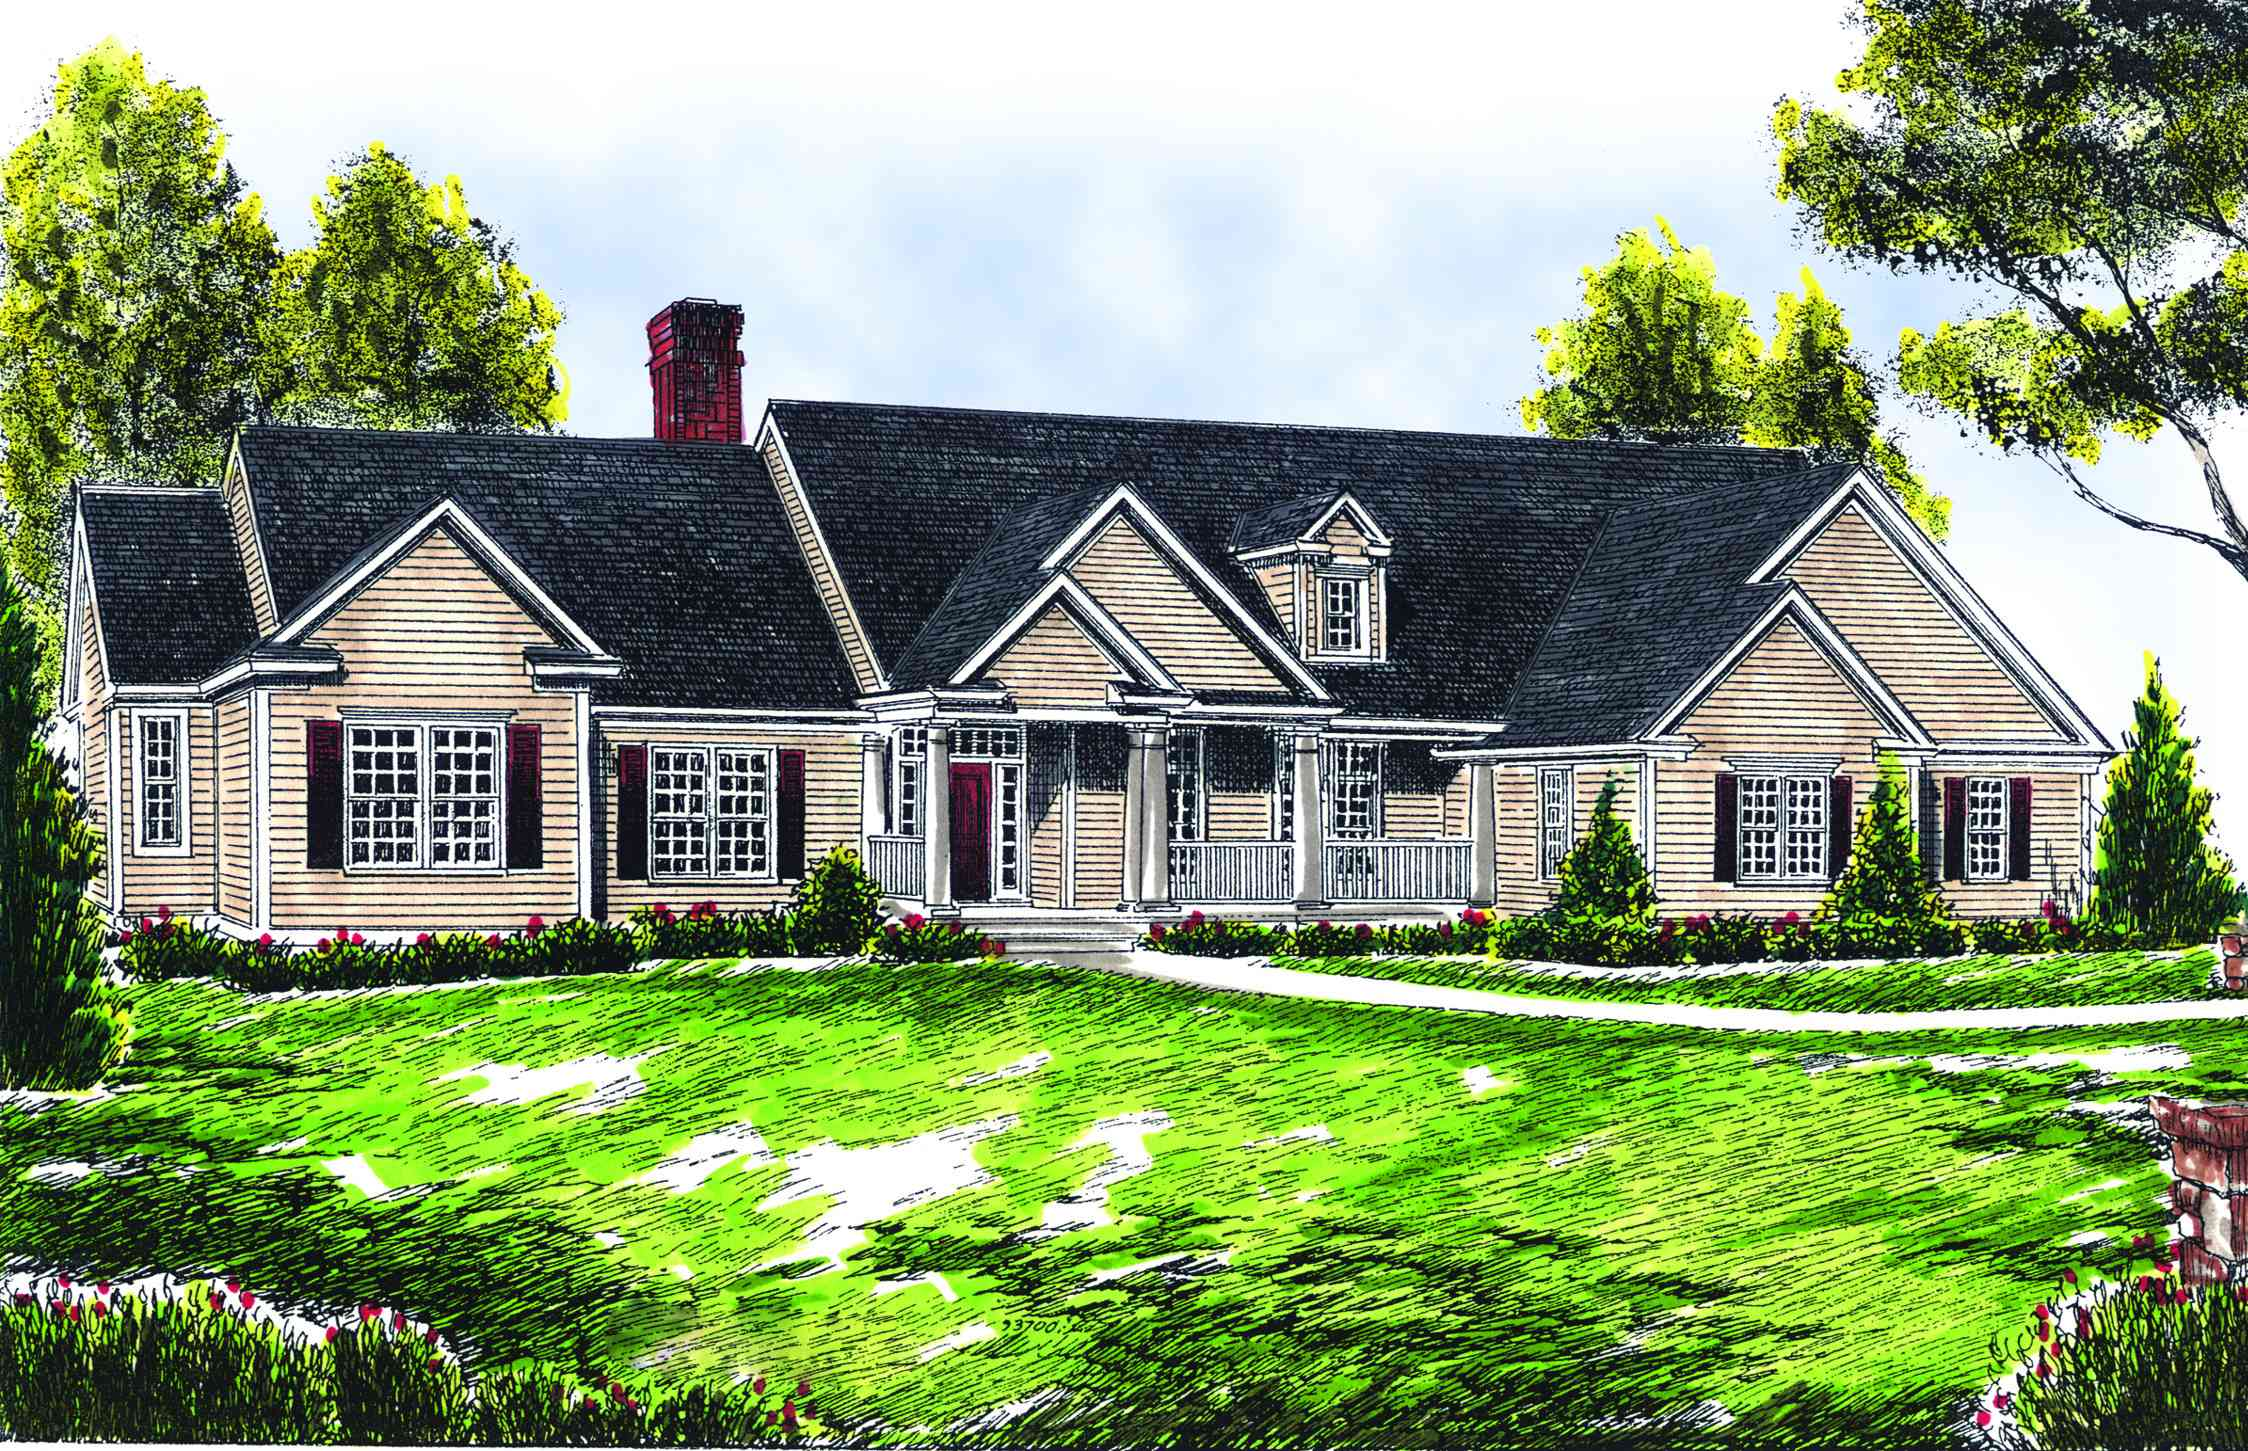 Ranch style farmhouse plan 89119ah architectural for Architectural designs farmhouse